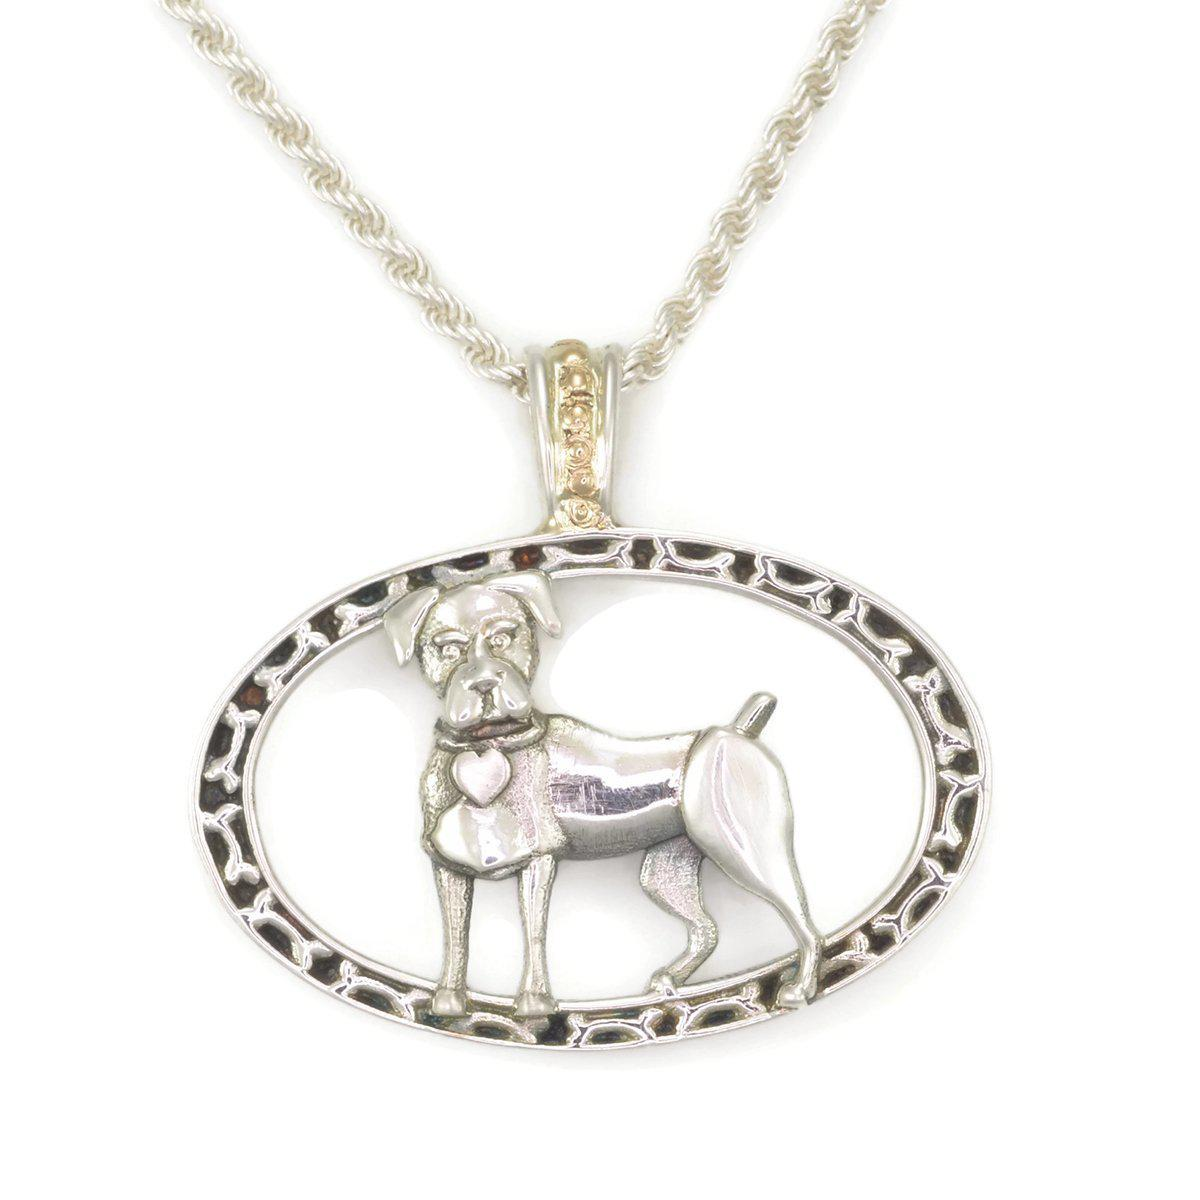 Donna Pizarro Designs Sterling Silver Great Dane Necklace With 14kt Accent qkhlojTxQN